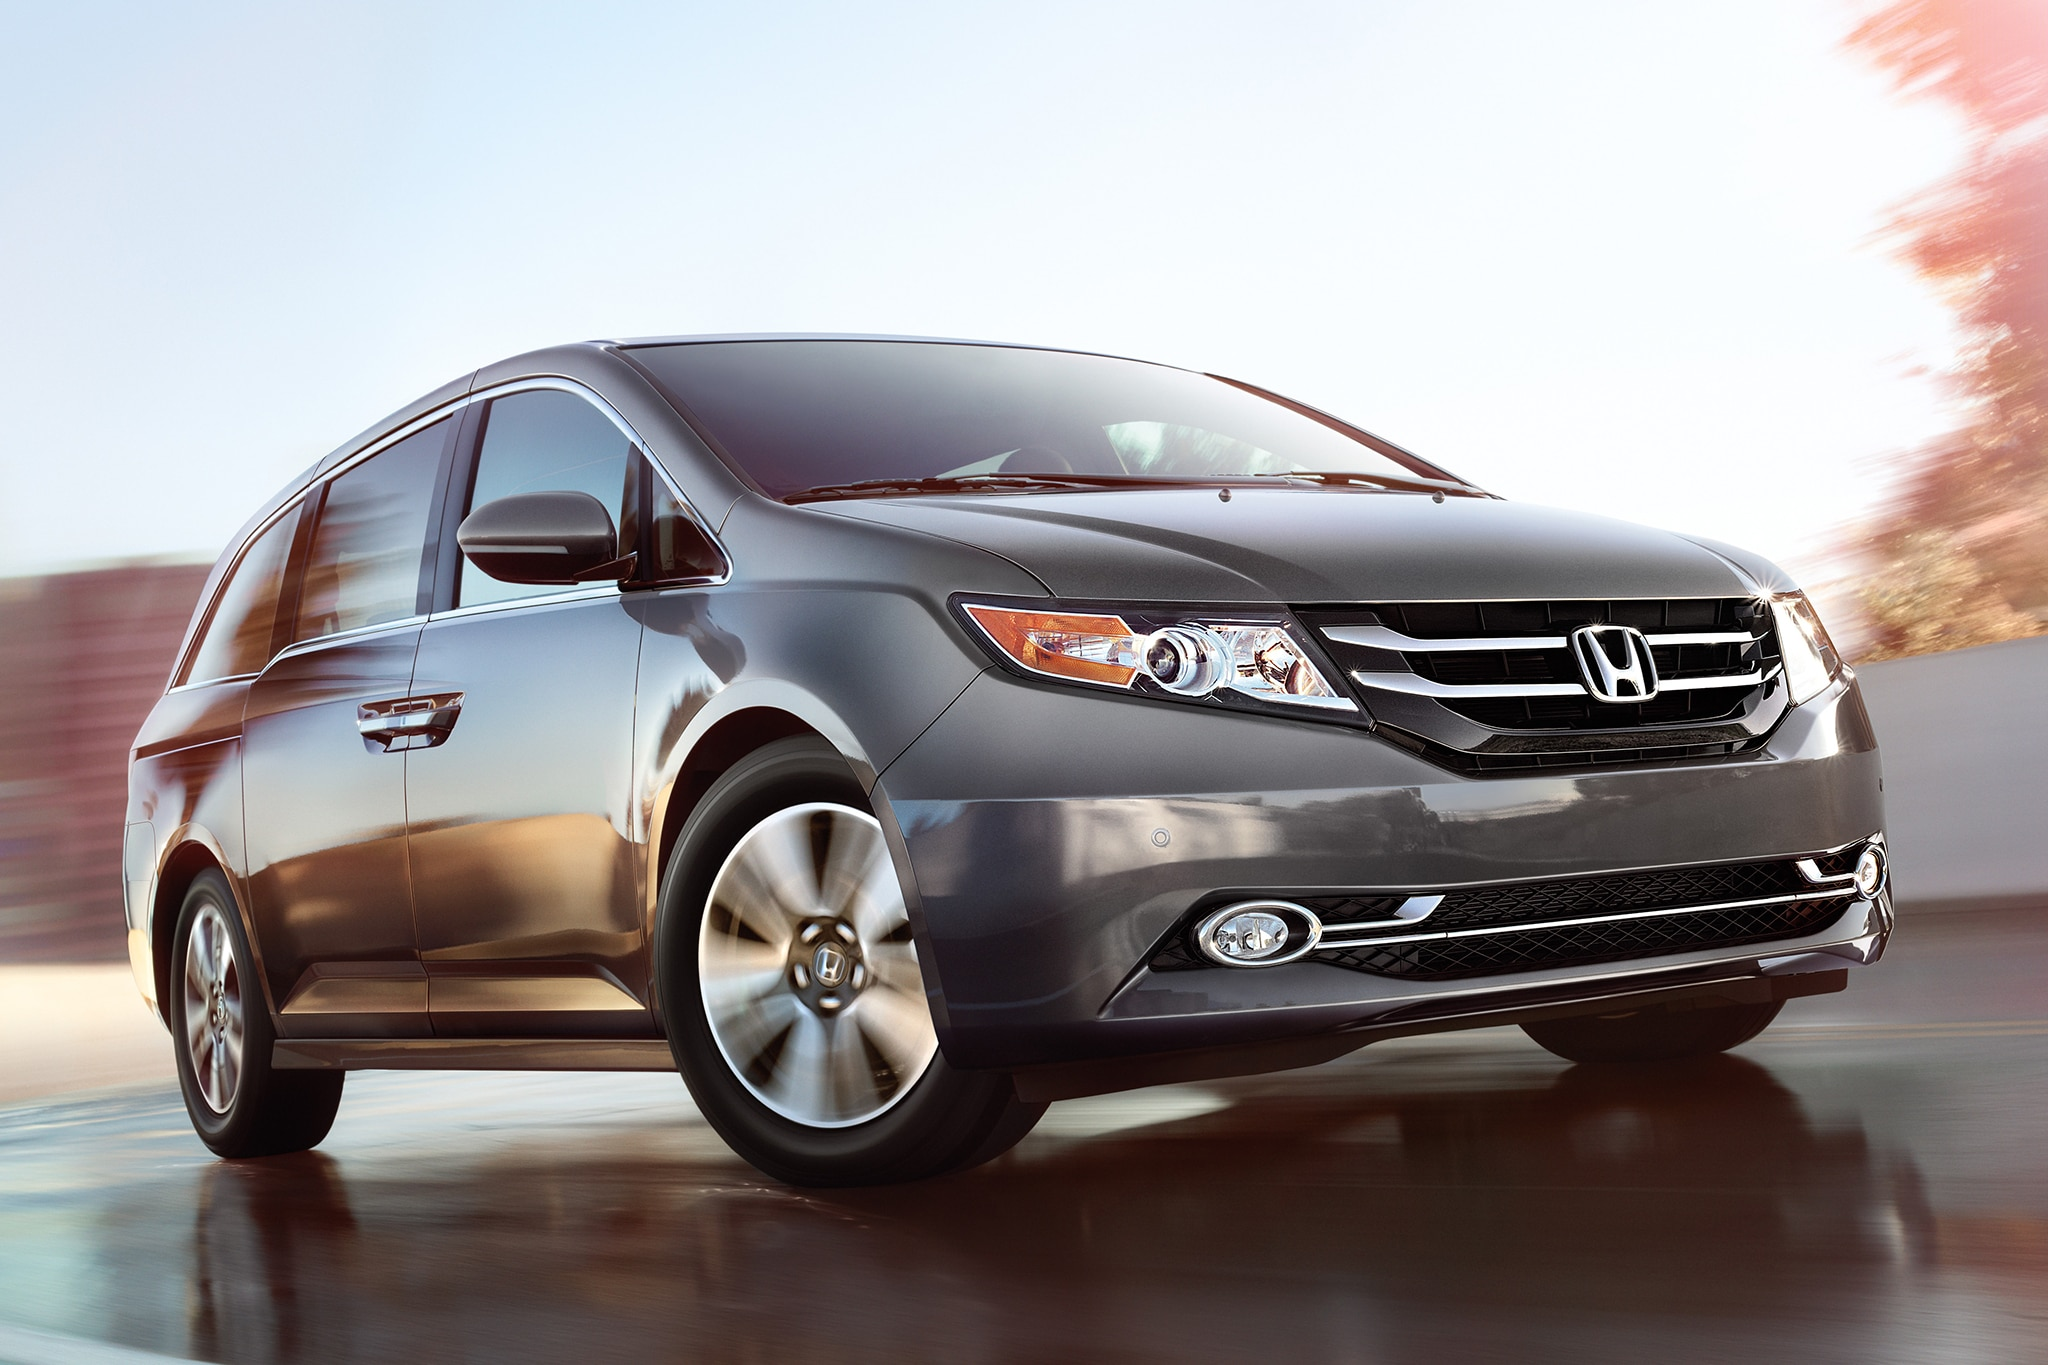 2014 Honda Odyssey Three Quarters View 11